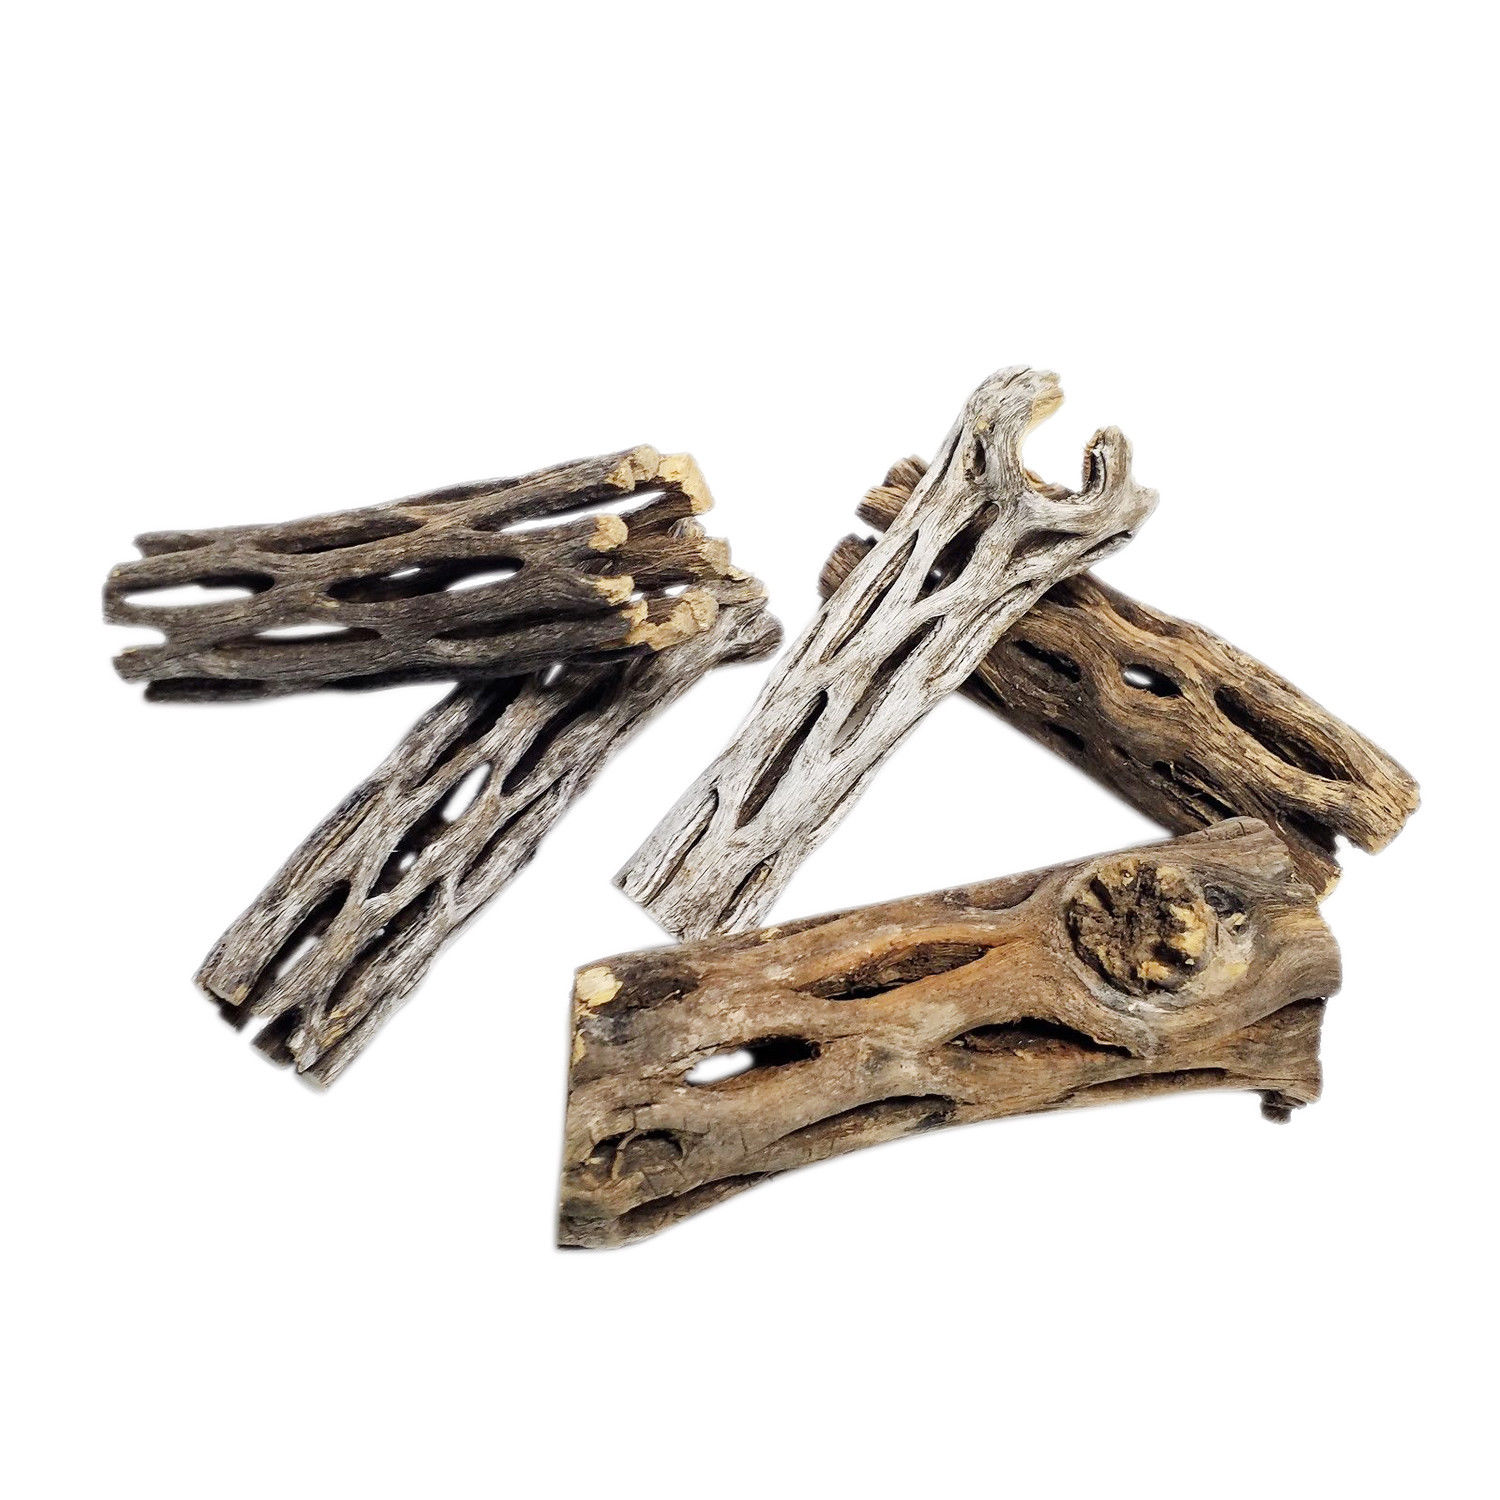 3″ Cholla Wood